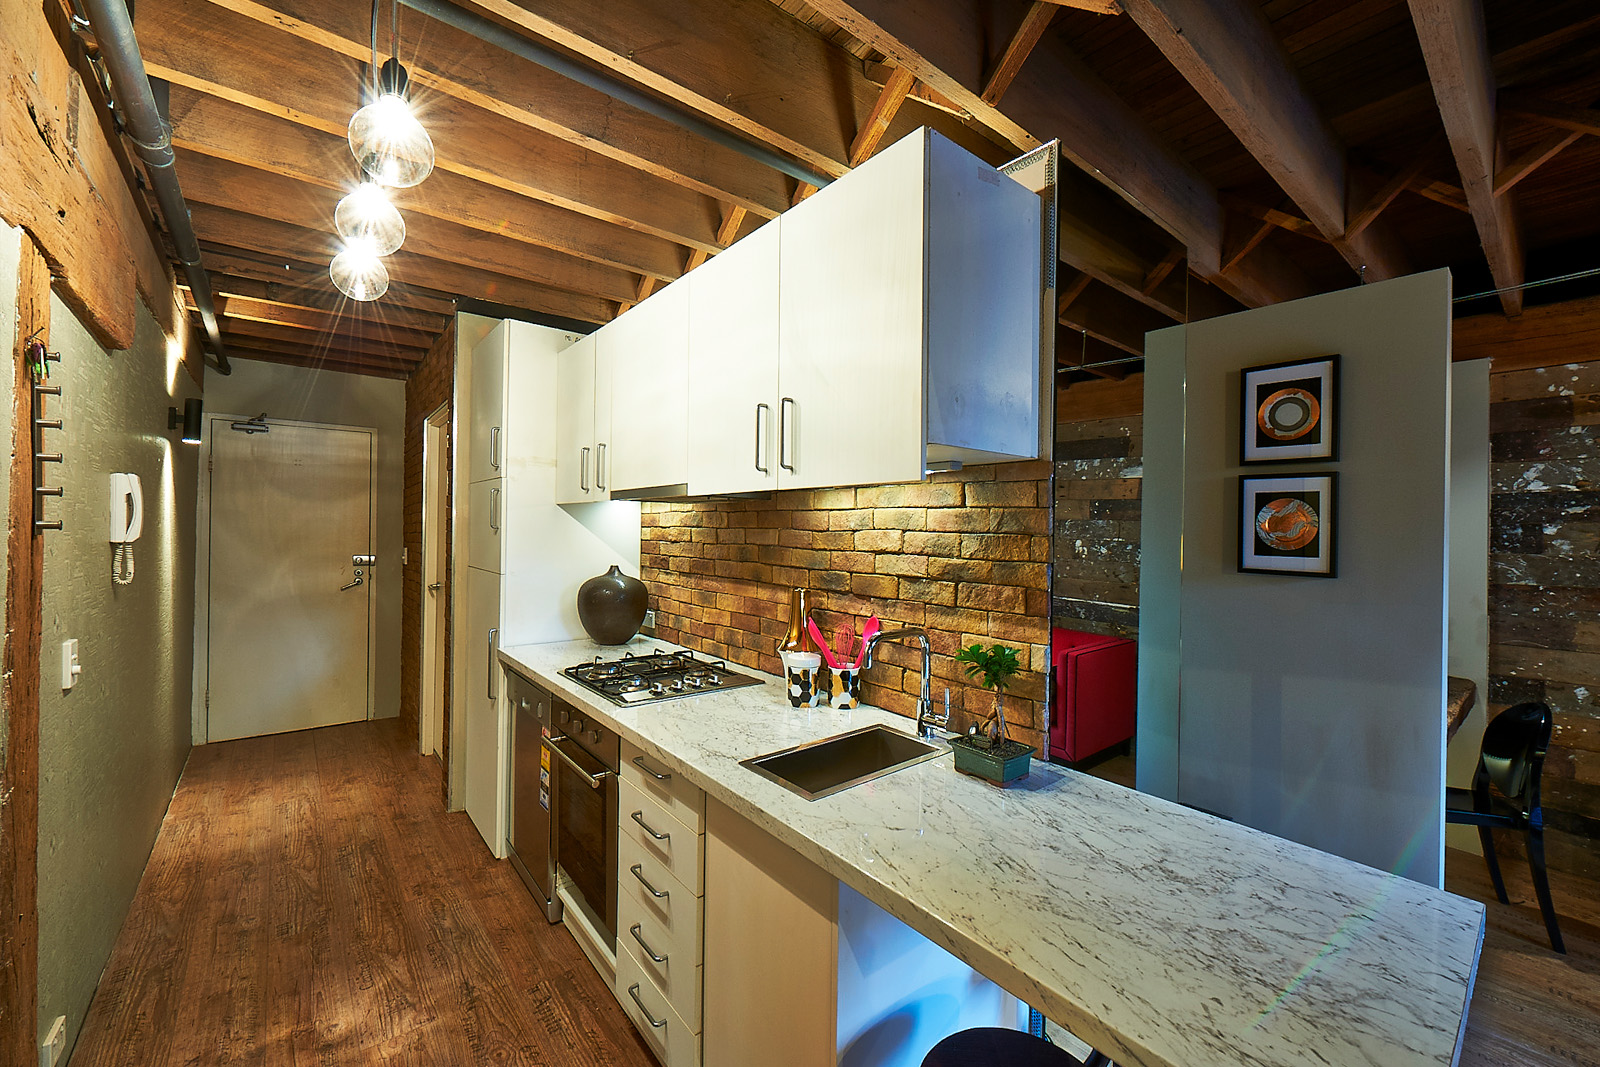 Cherie-Barber_Renovating-For-Profit_Small-Space_Chippendale-After